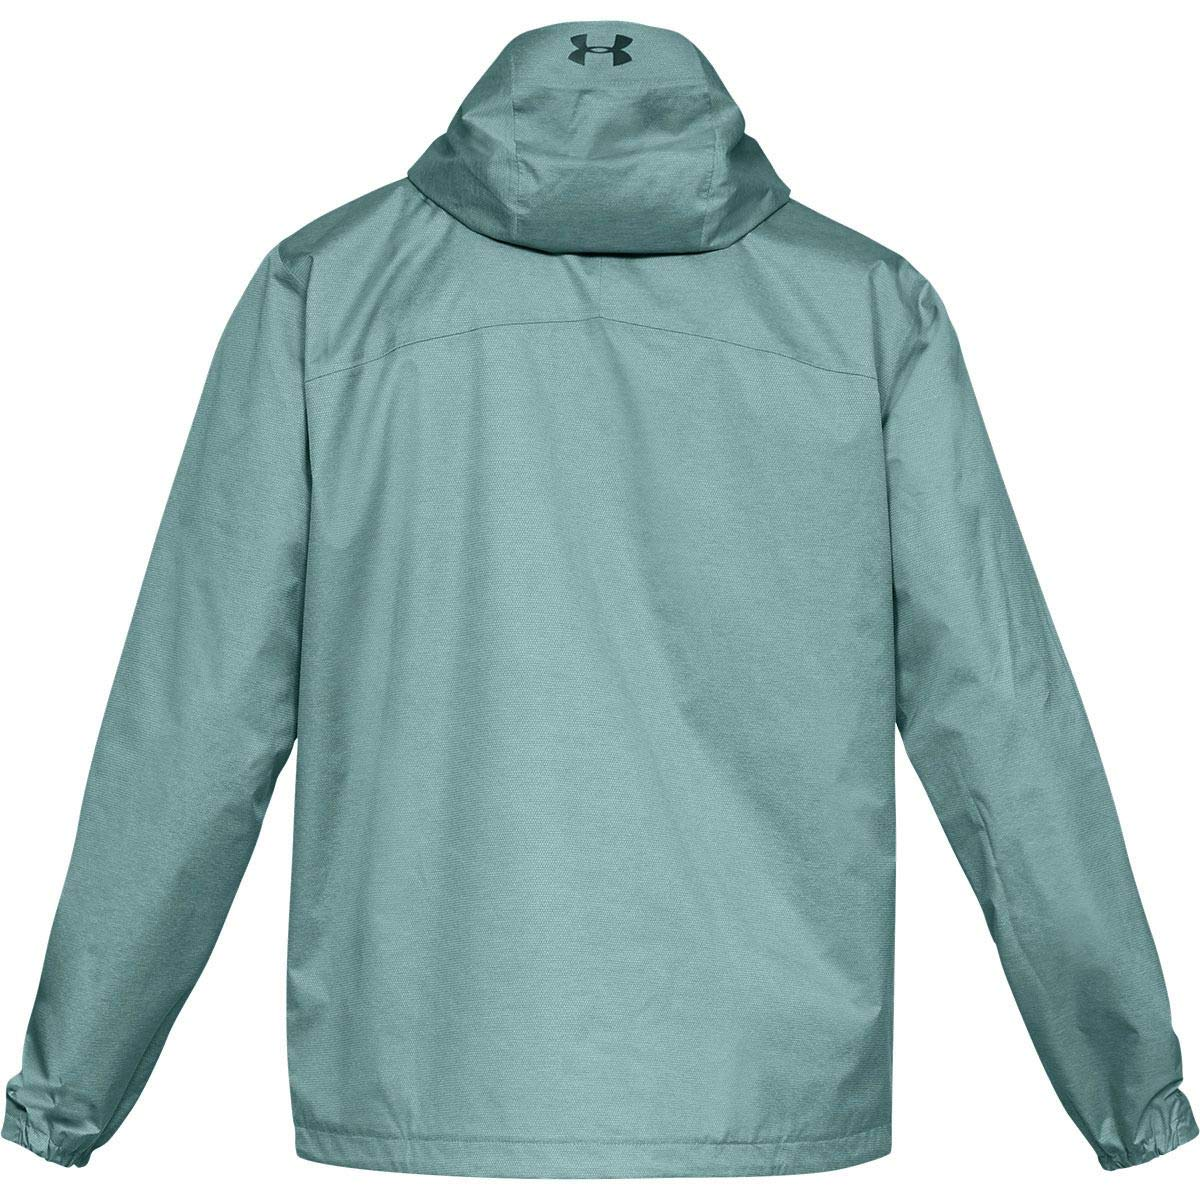 Under Armour Mens Overlook Jacket Under Armour Outdoors